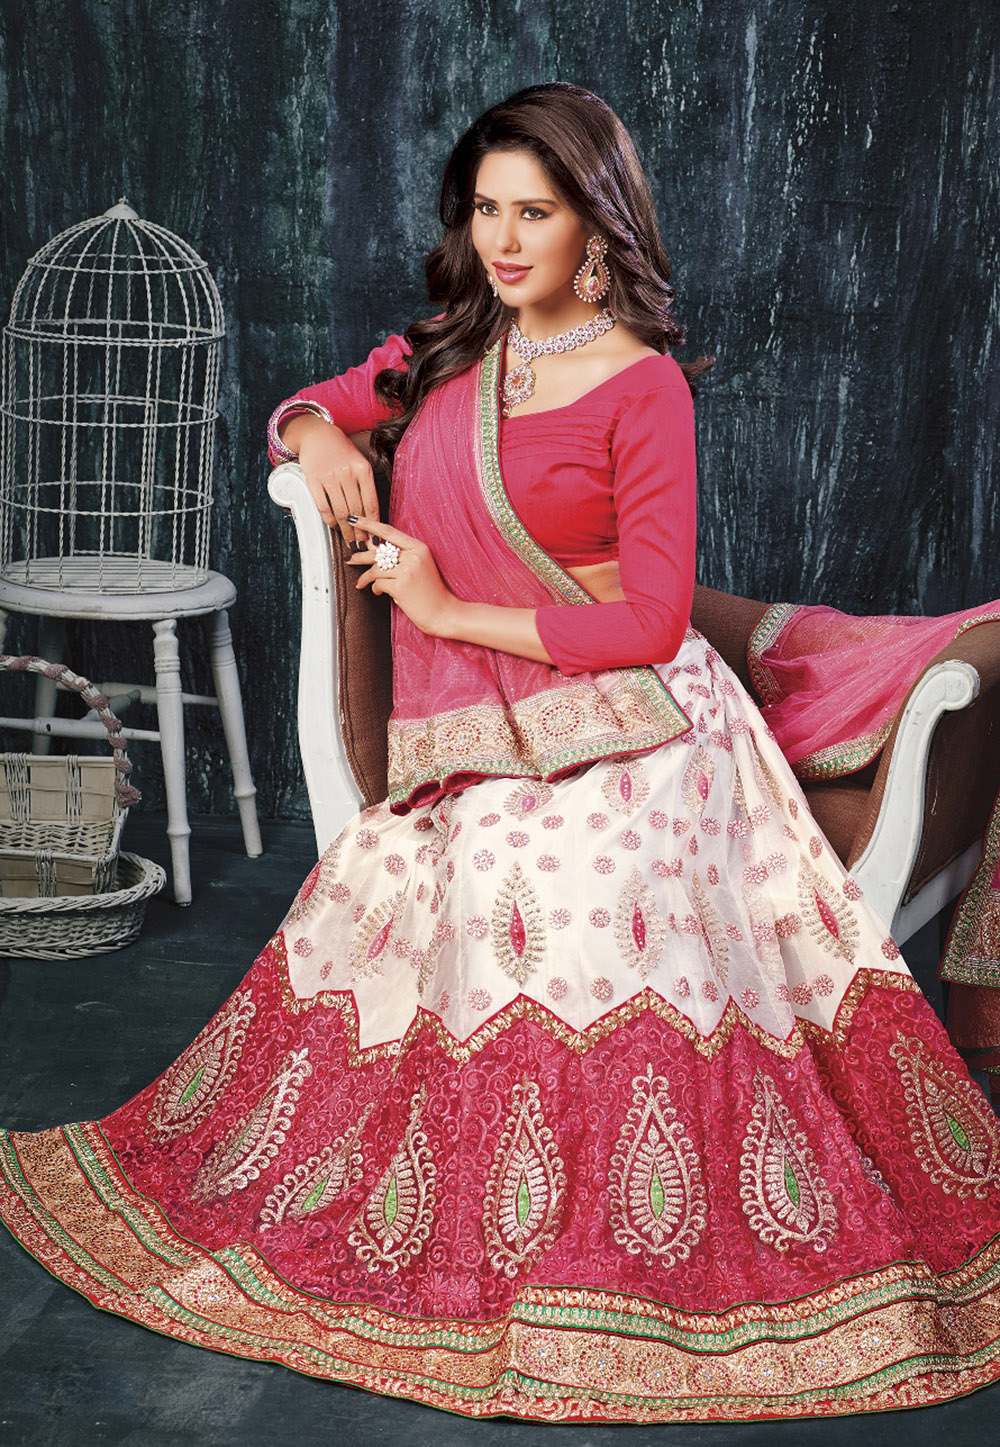 A White and Pink Lehenga Choli. (Image: Utsavfashion.com)